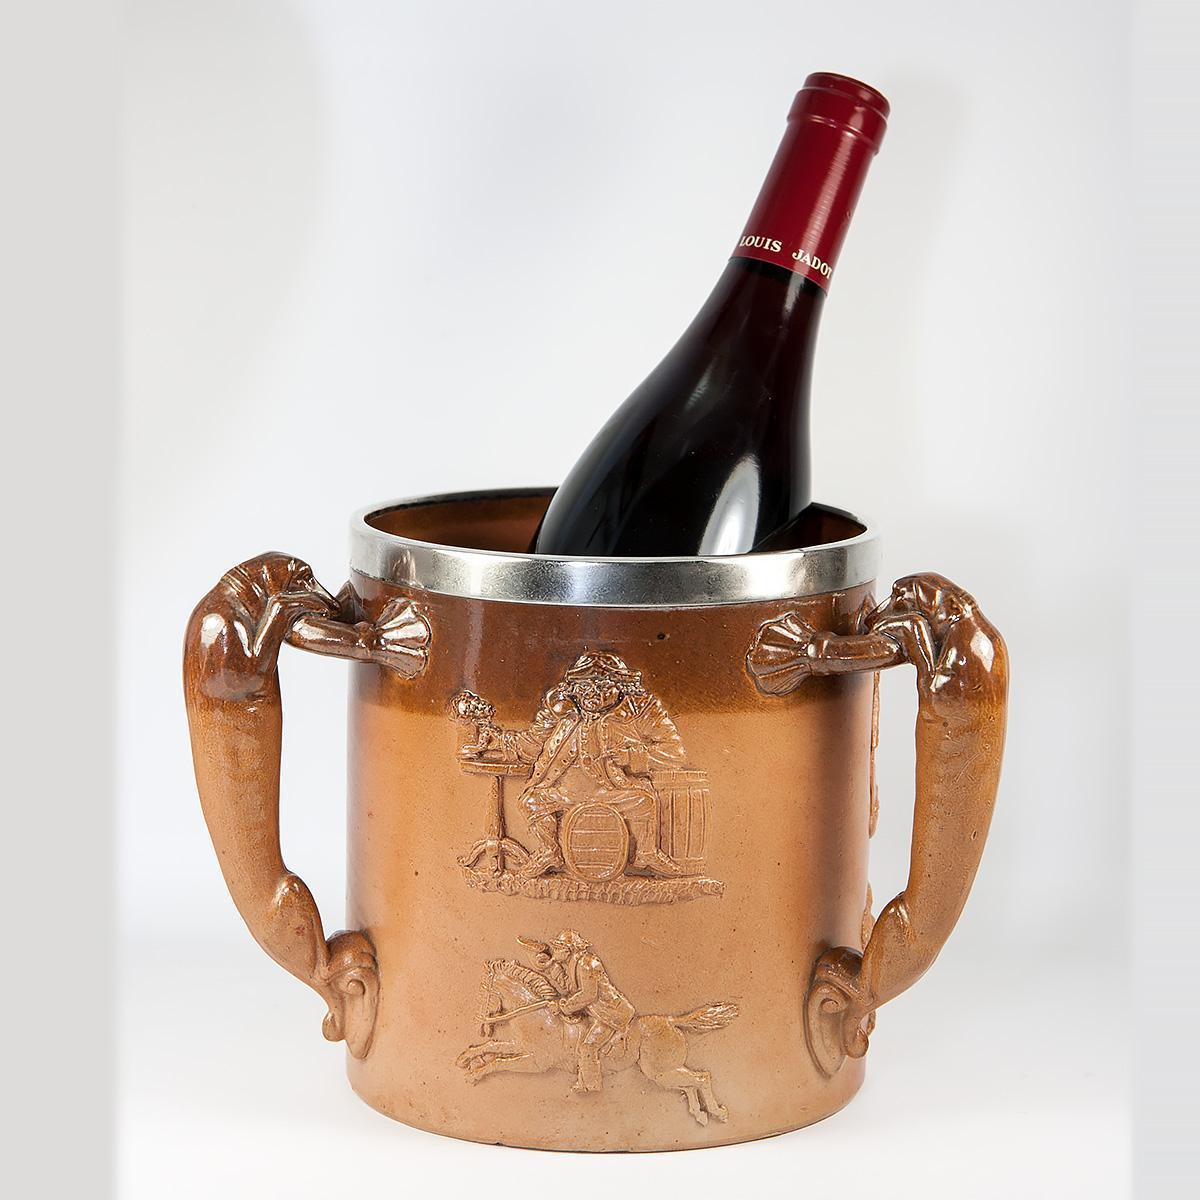 BIG Antique Mortlake or Doulton Lambeth Salt Glaze Pottery Wine Cooler, Sterling Silver Rim, Dog Handles, Dachshund, c.1881